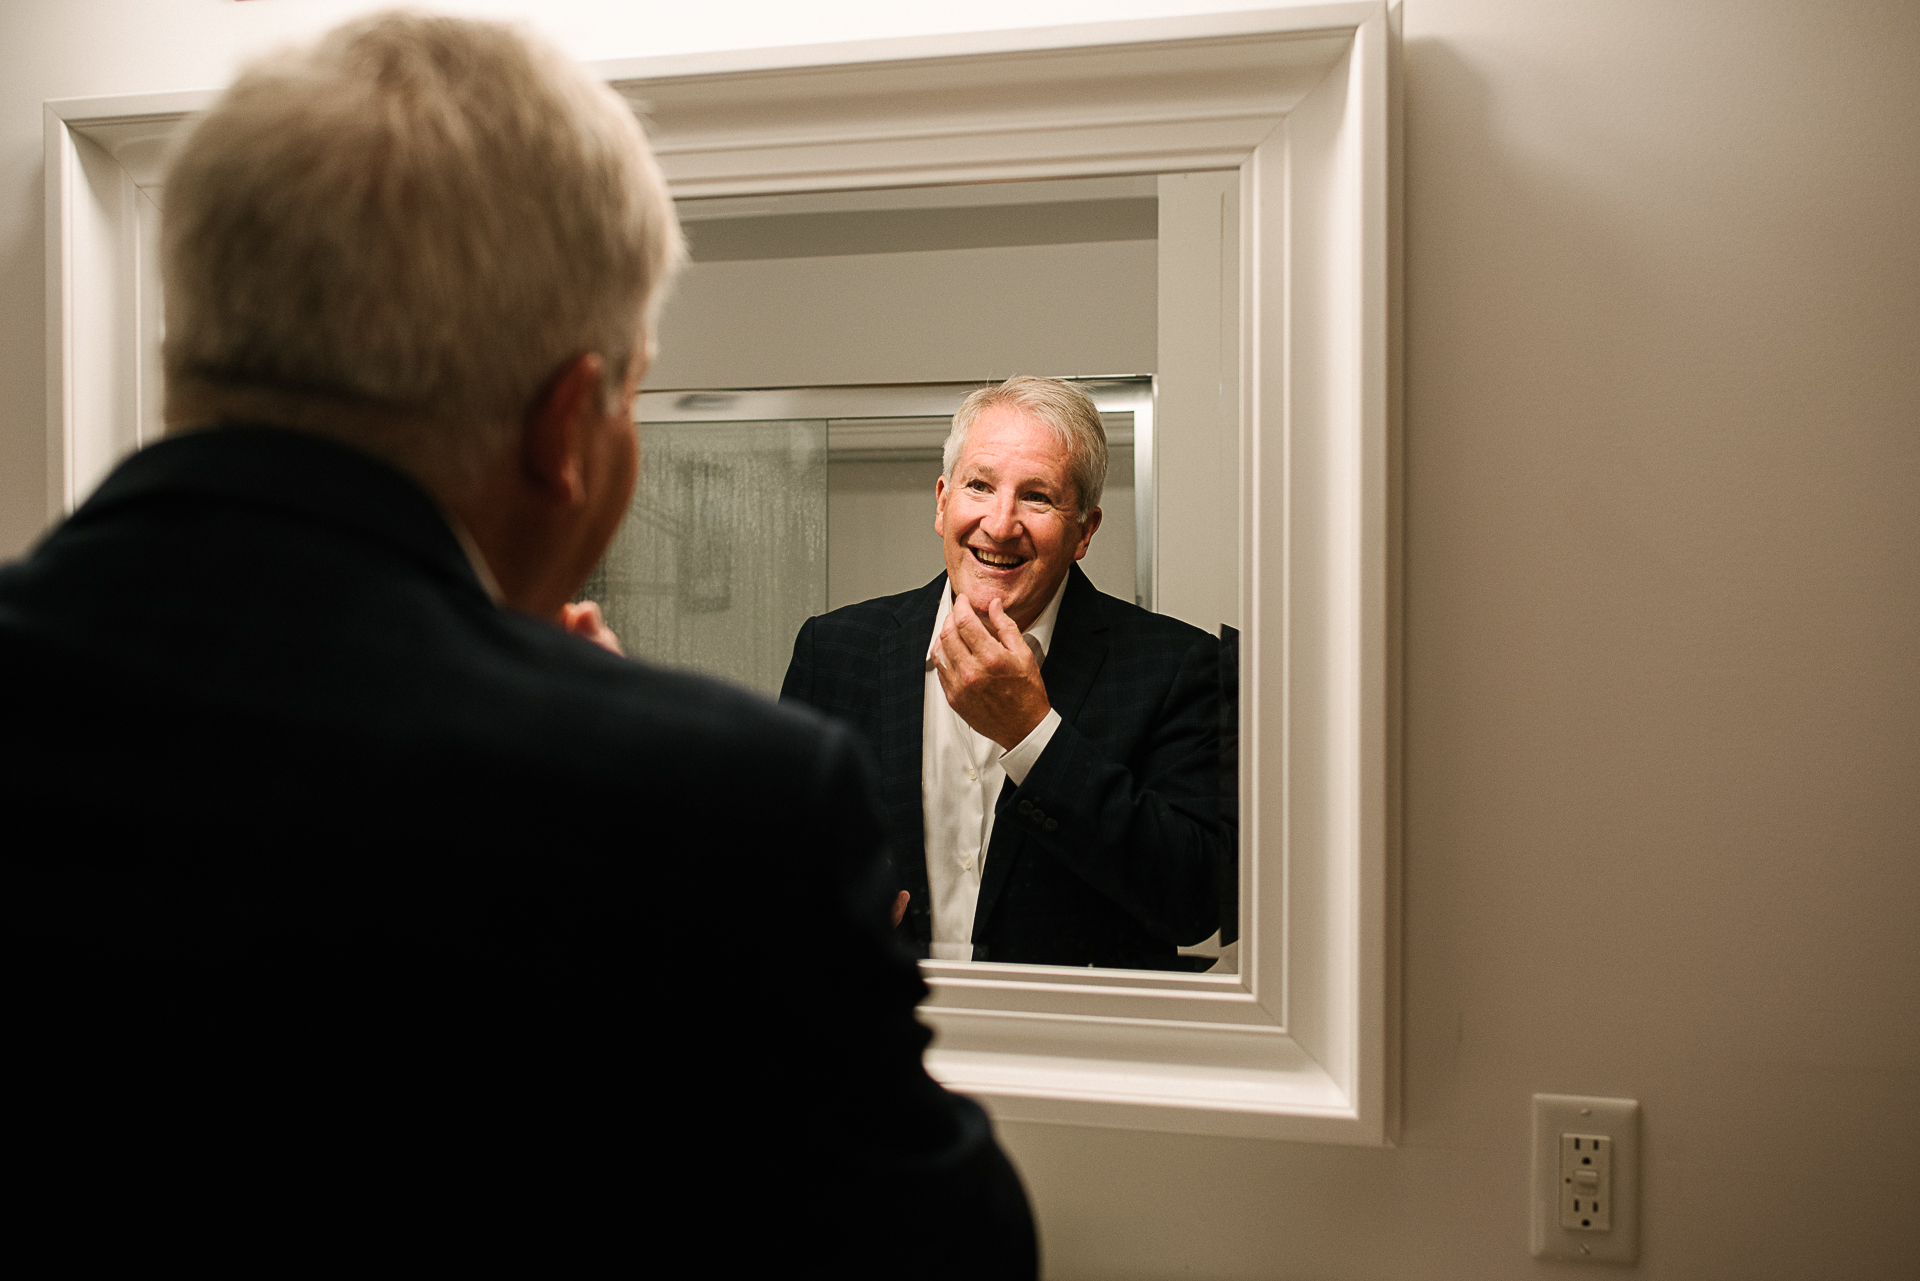 At-Home Elopement Photos - Ontario | The groom looks at himself in the mirror and smiles